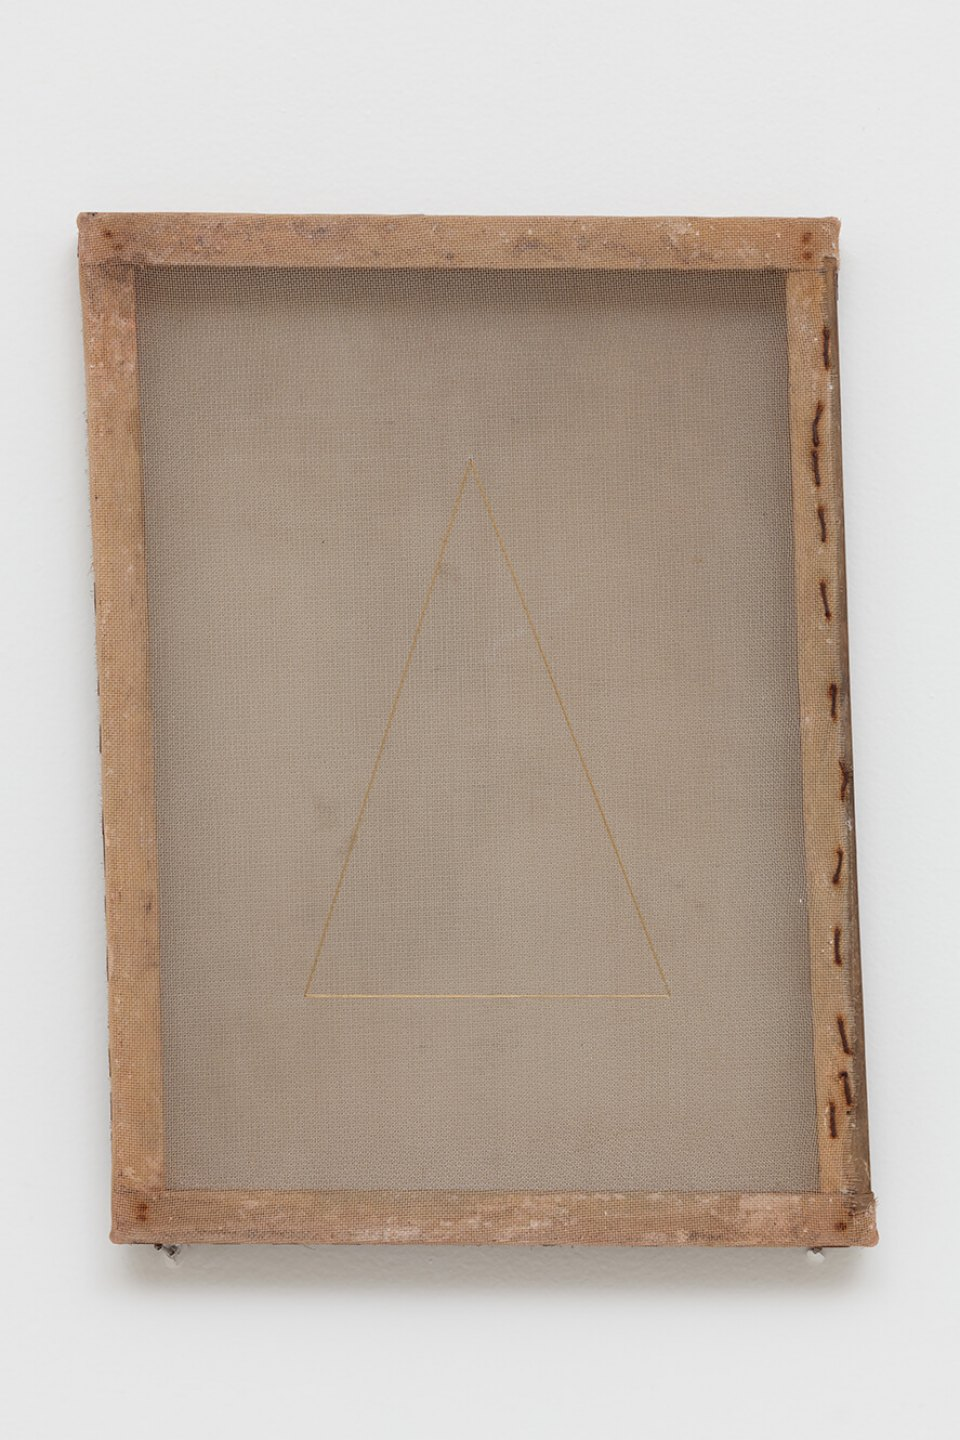 Paloma Bosquê, <em>Delta</em>, 2015/2016, translucent canvas, wire mesh and lurex threads, 38 ×    28 cm - Mendes Wood DM